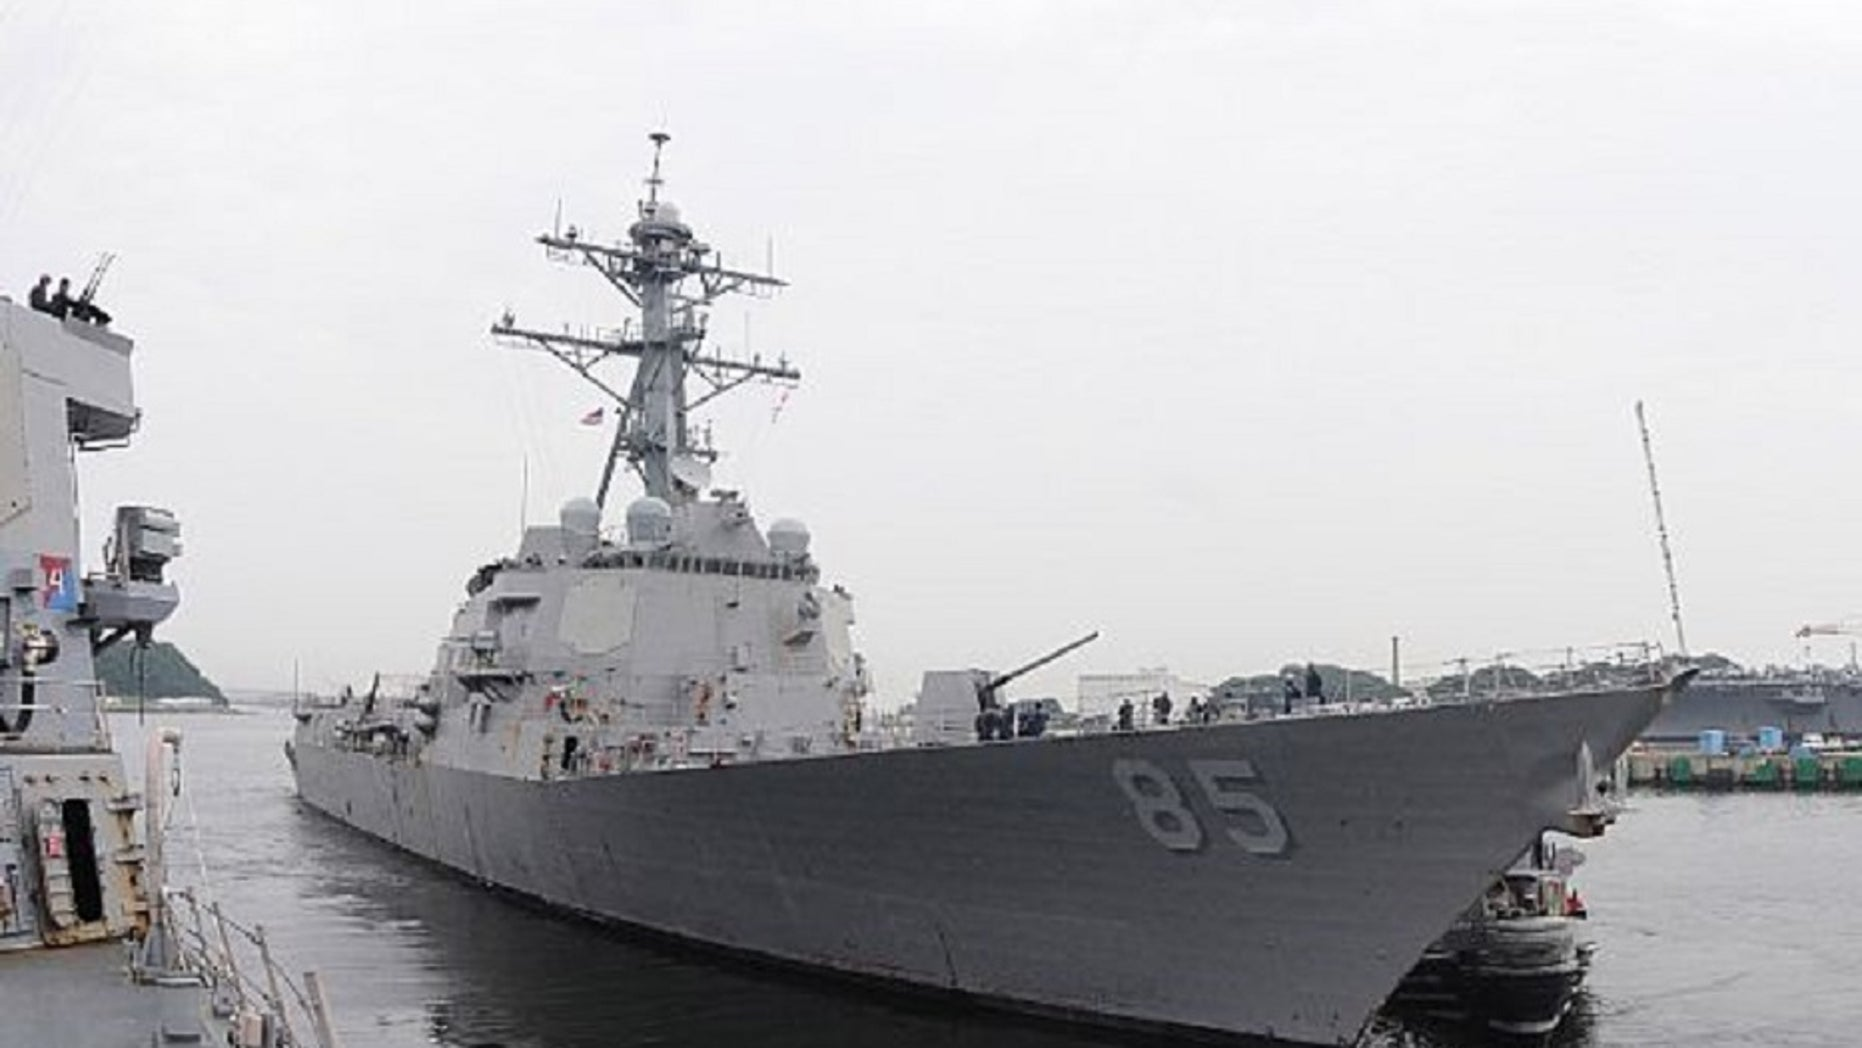 A U.S. Navy ship sailed within 12 miles of China's Paracel Island chain on Monday, a move likely to provoke Beijing which claims nearly of the strategic waters in the South China Sea.